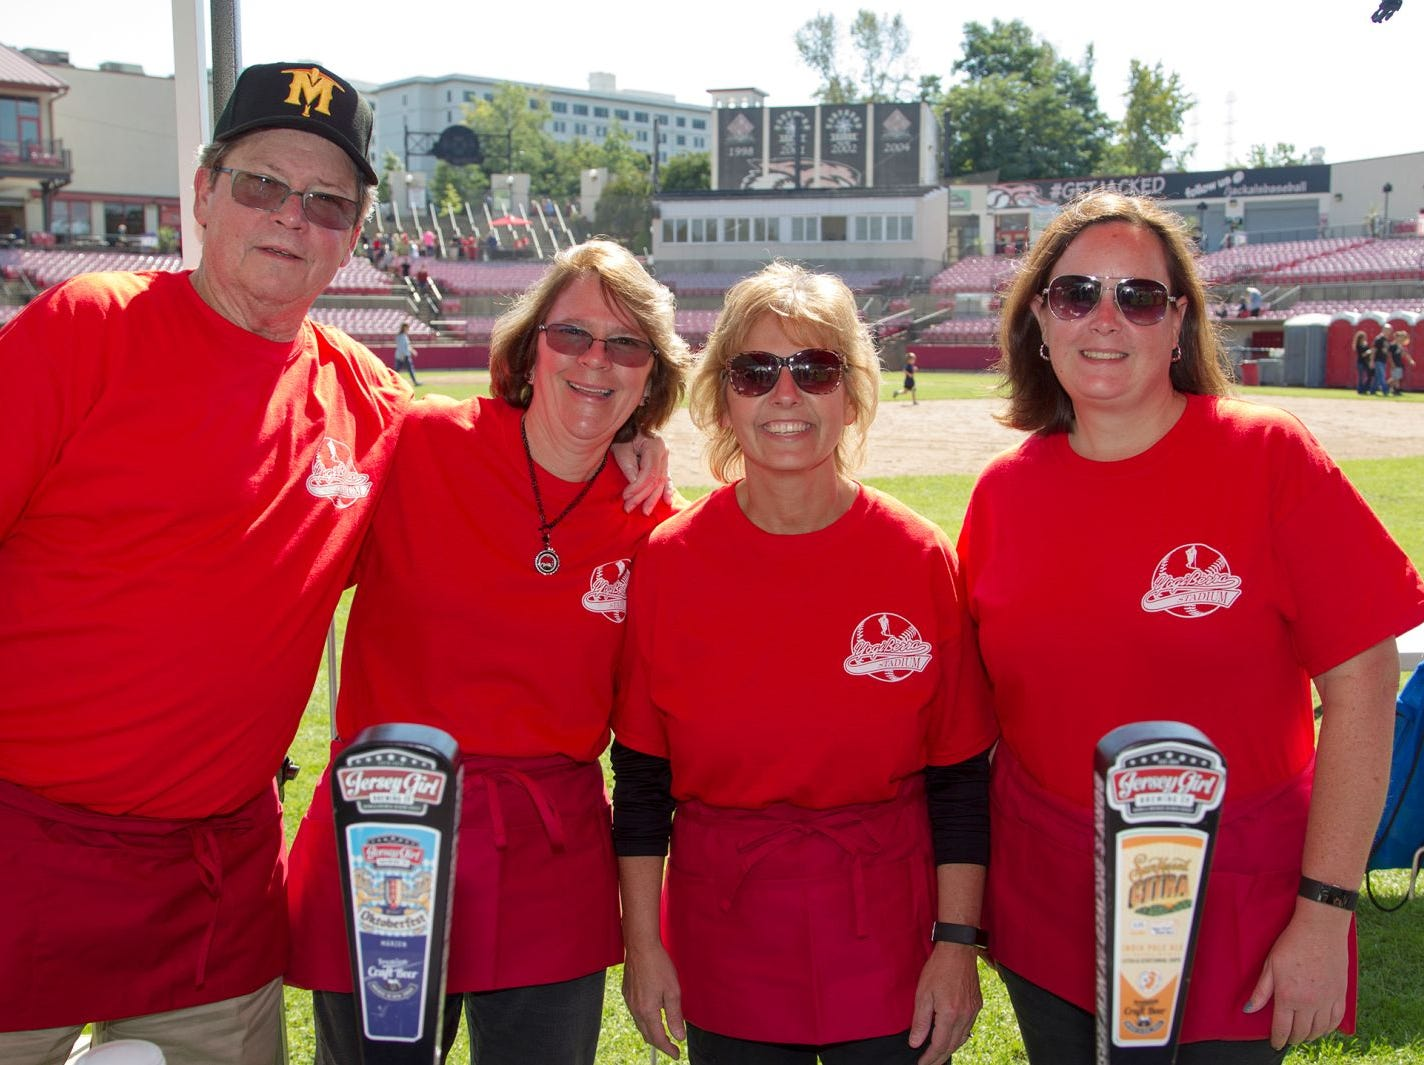 John, Darlene, Cathy, Lisa. The second annual Food Truck & Craft Beer Festival at Yogi Berra Stadium in Little Falls. 09/29/2018